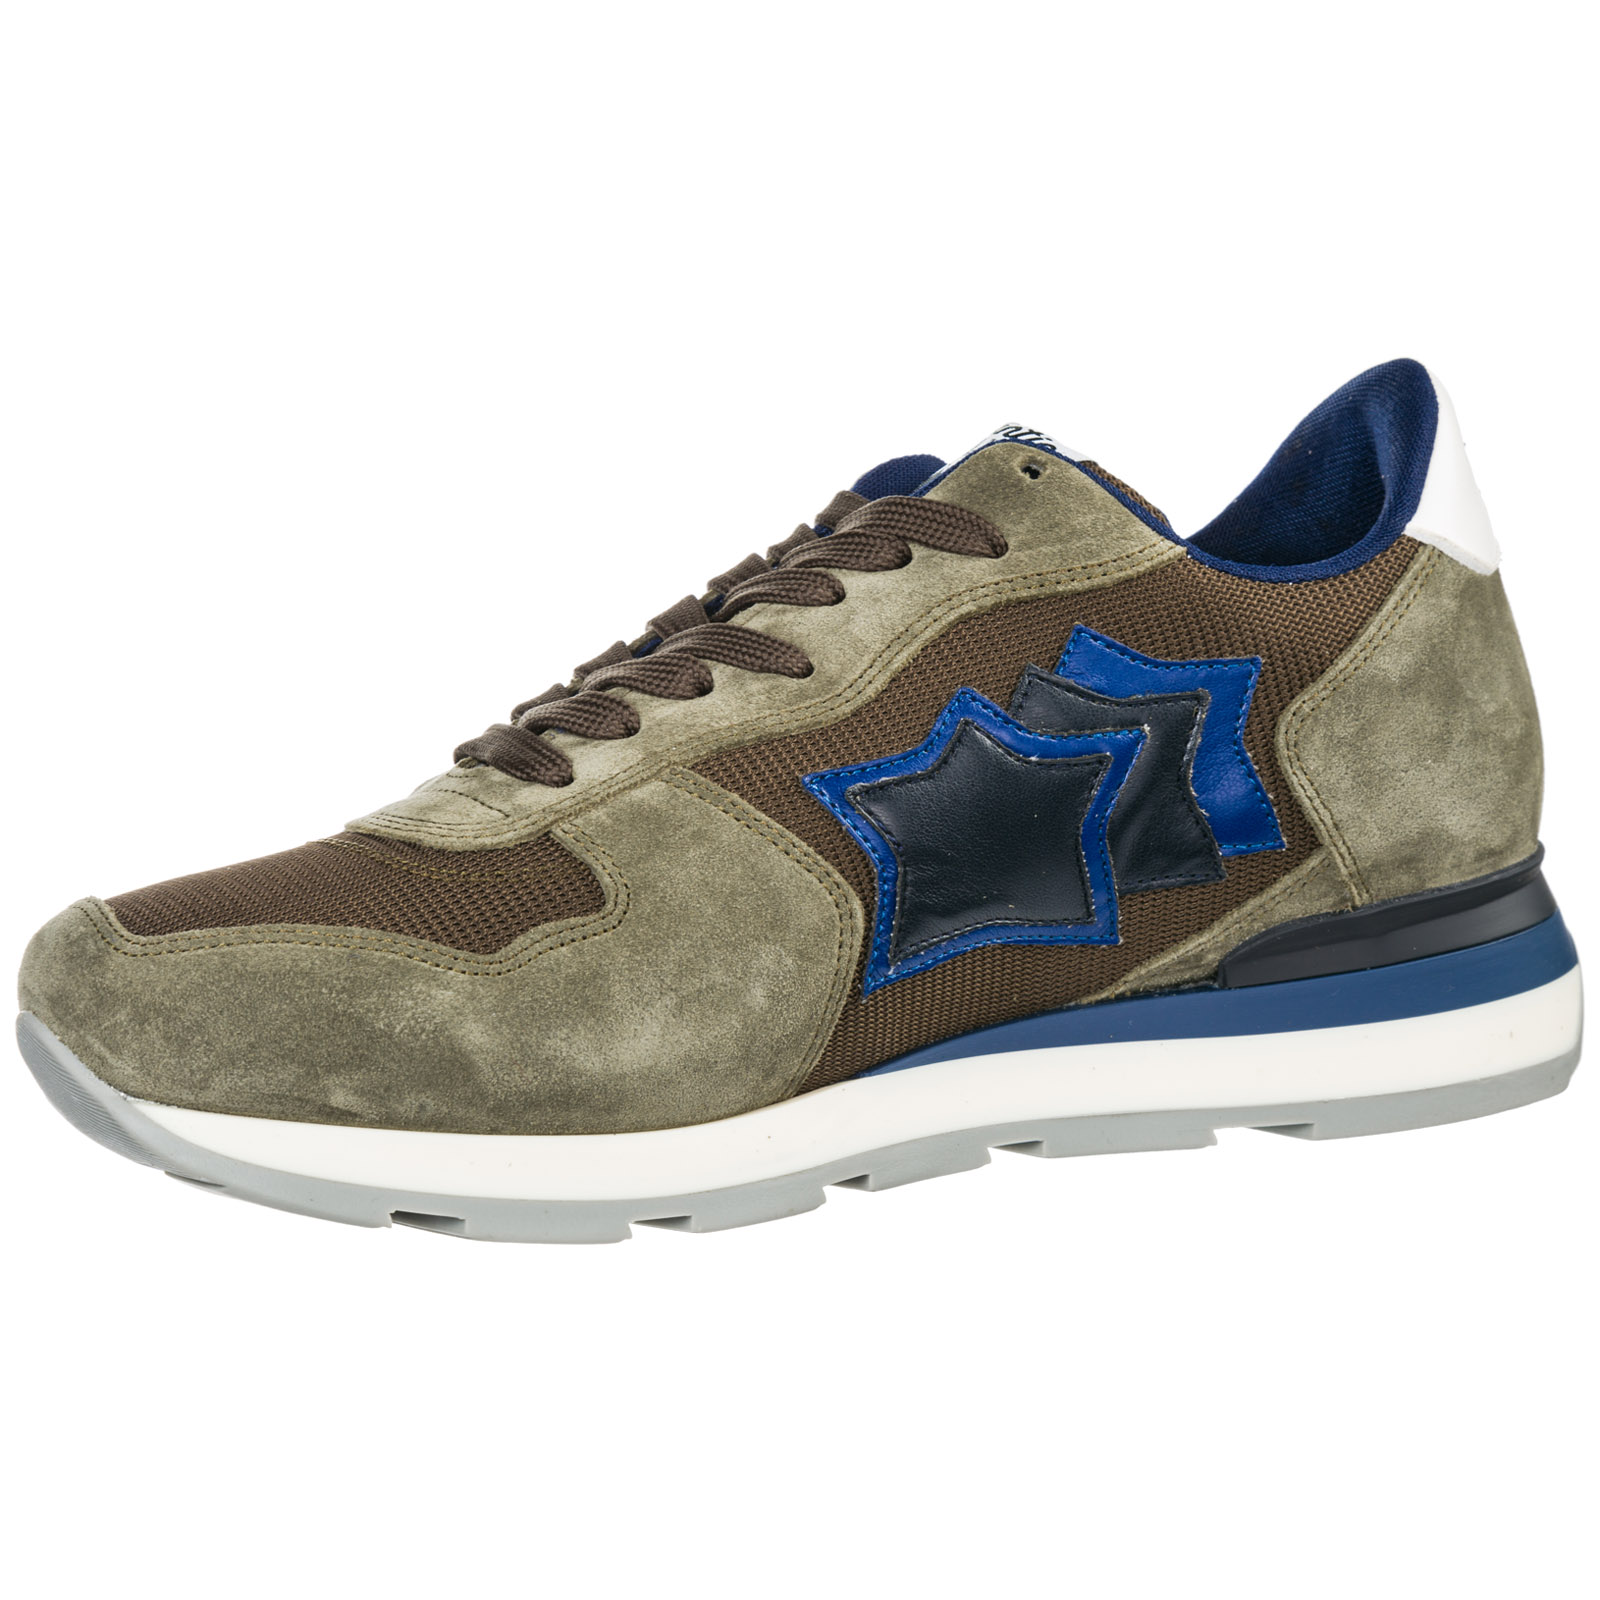 Men's shoes suede trainers sneakers antares